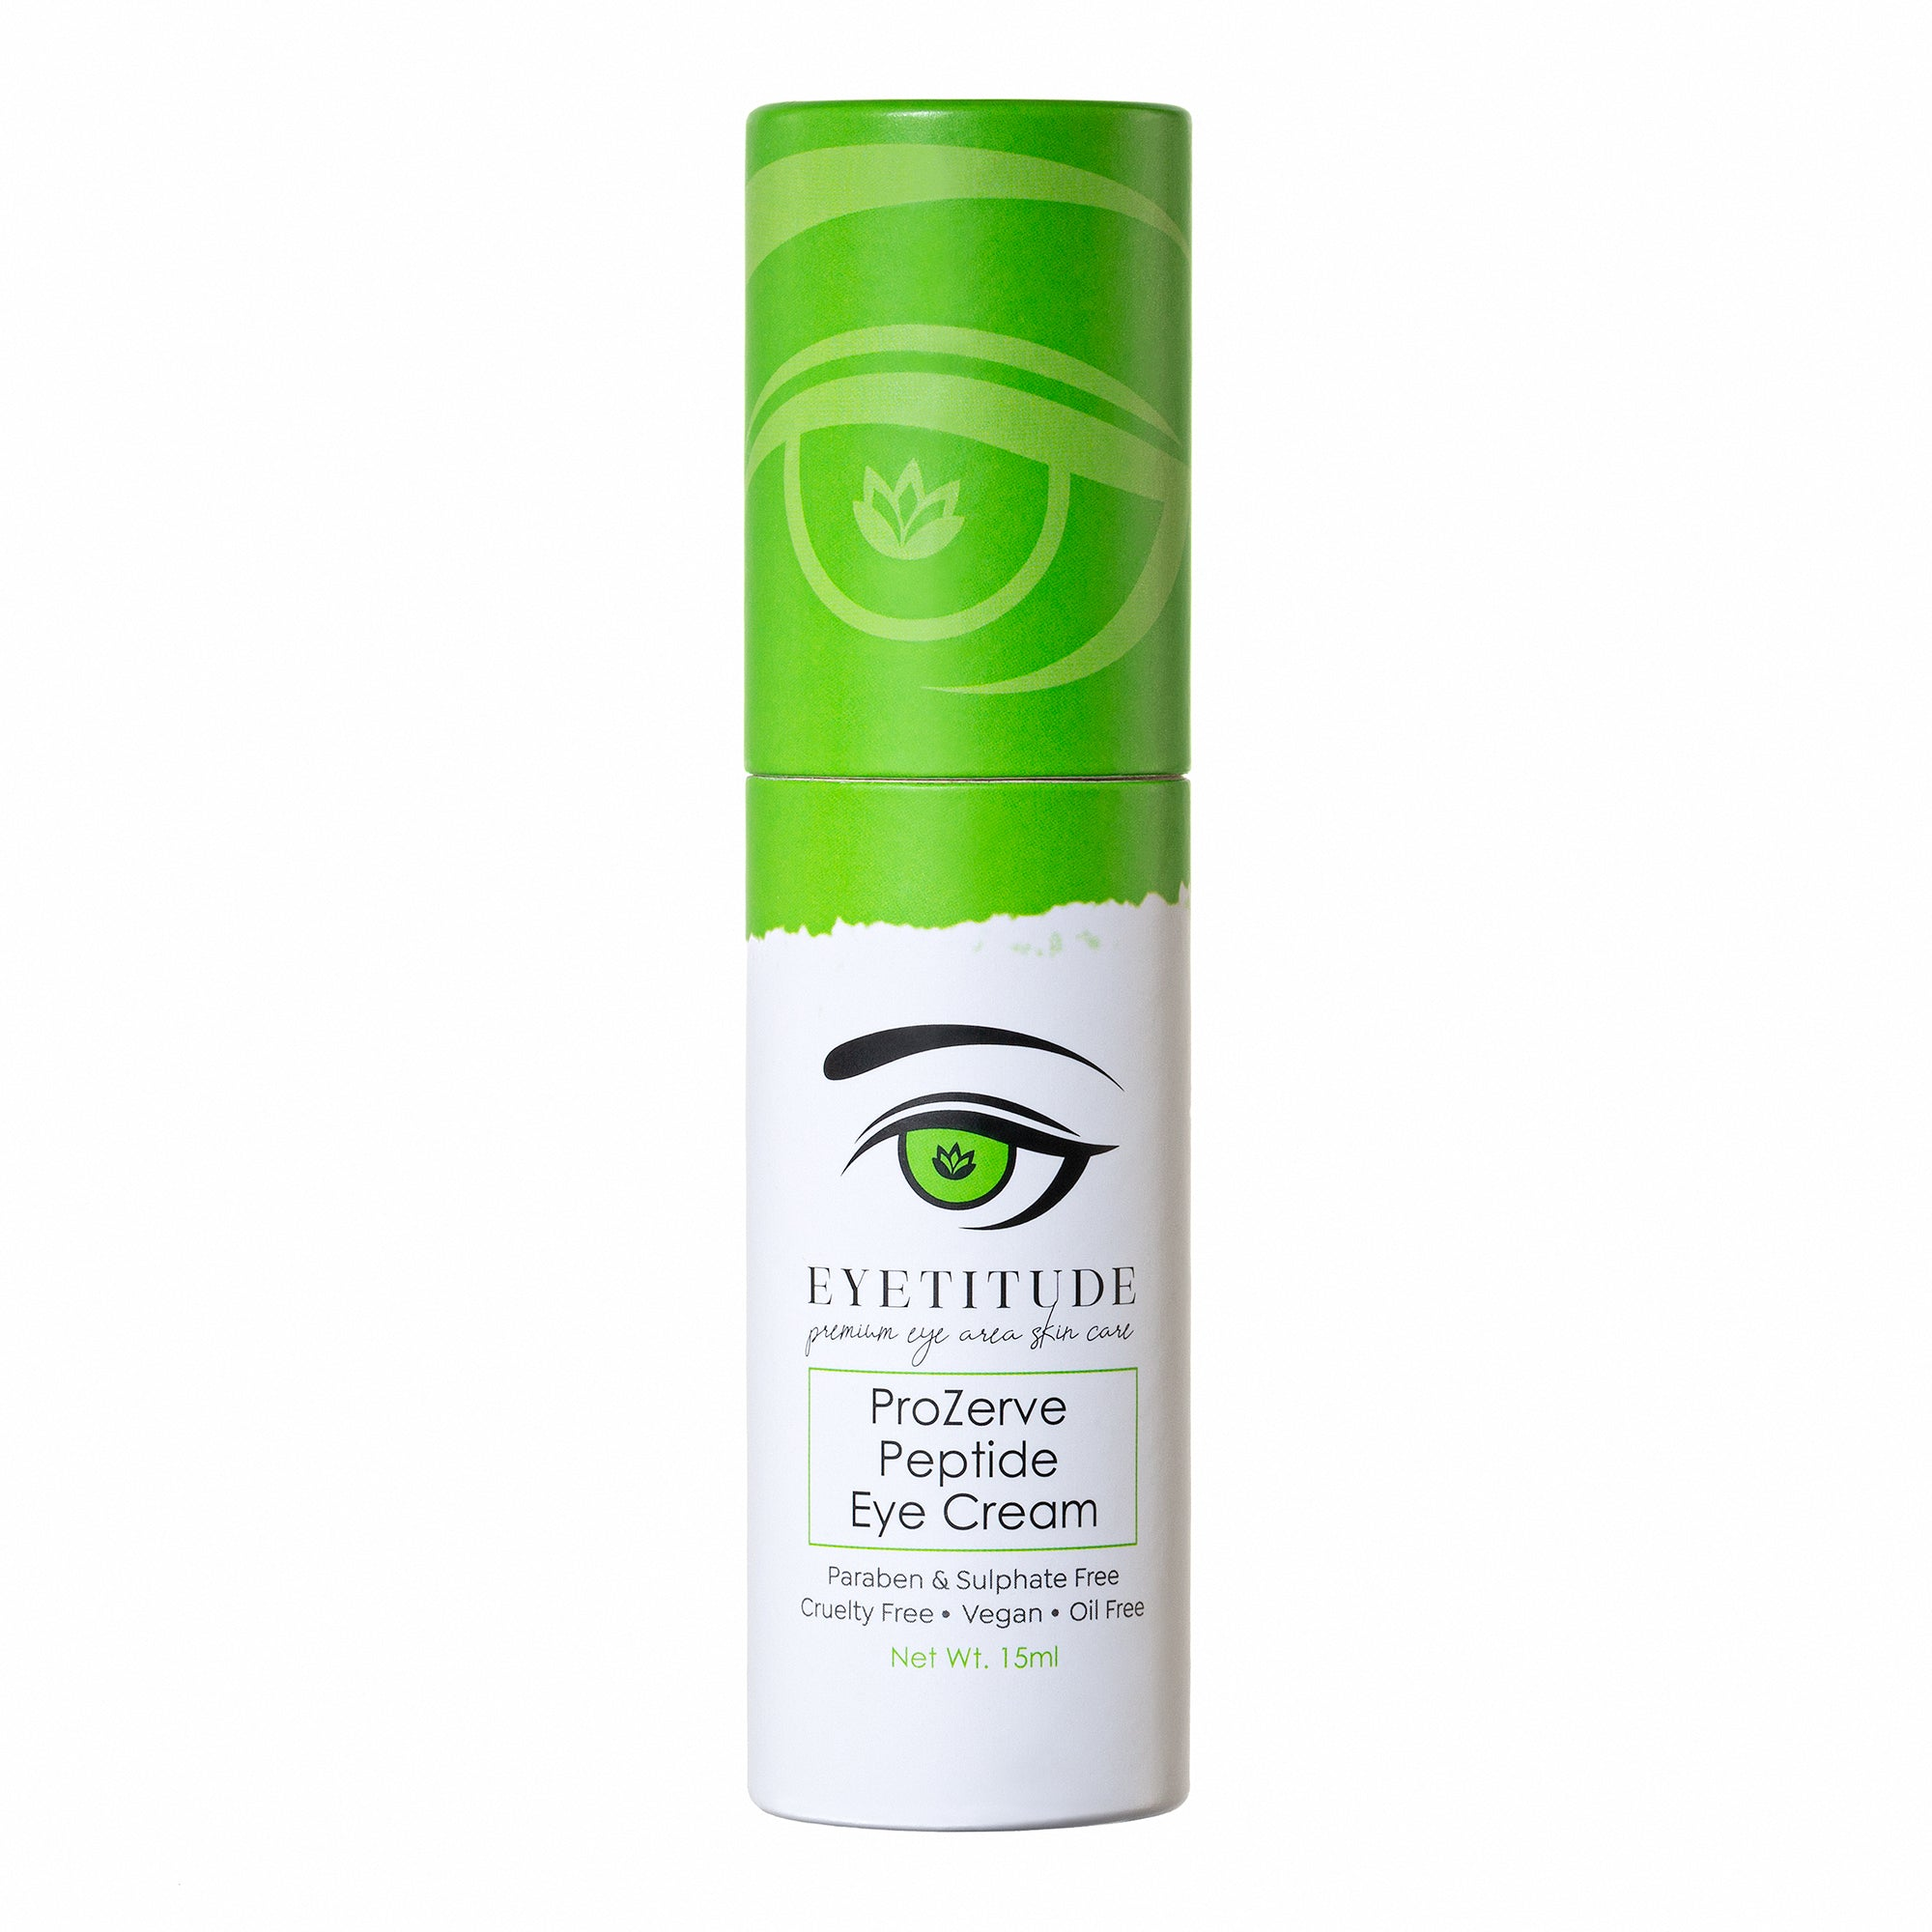 ProZerve Peptide Eye Cream